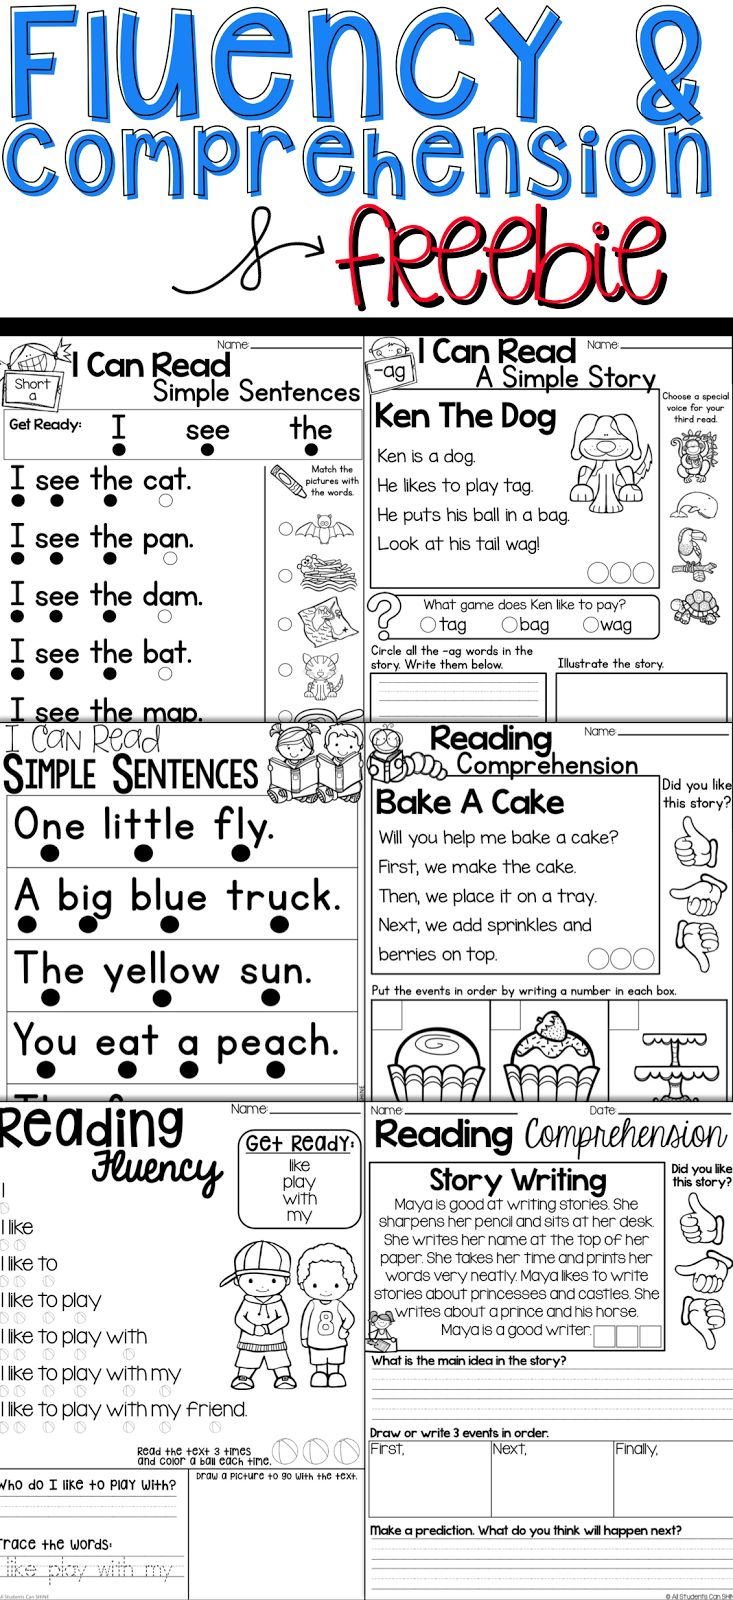 Workbooks reading comprehension worksheets 4th grade common core : Best 25+ 3rd grade reading comprehension worksheets ideas on ...